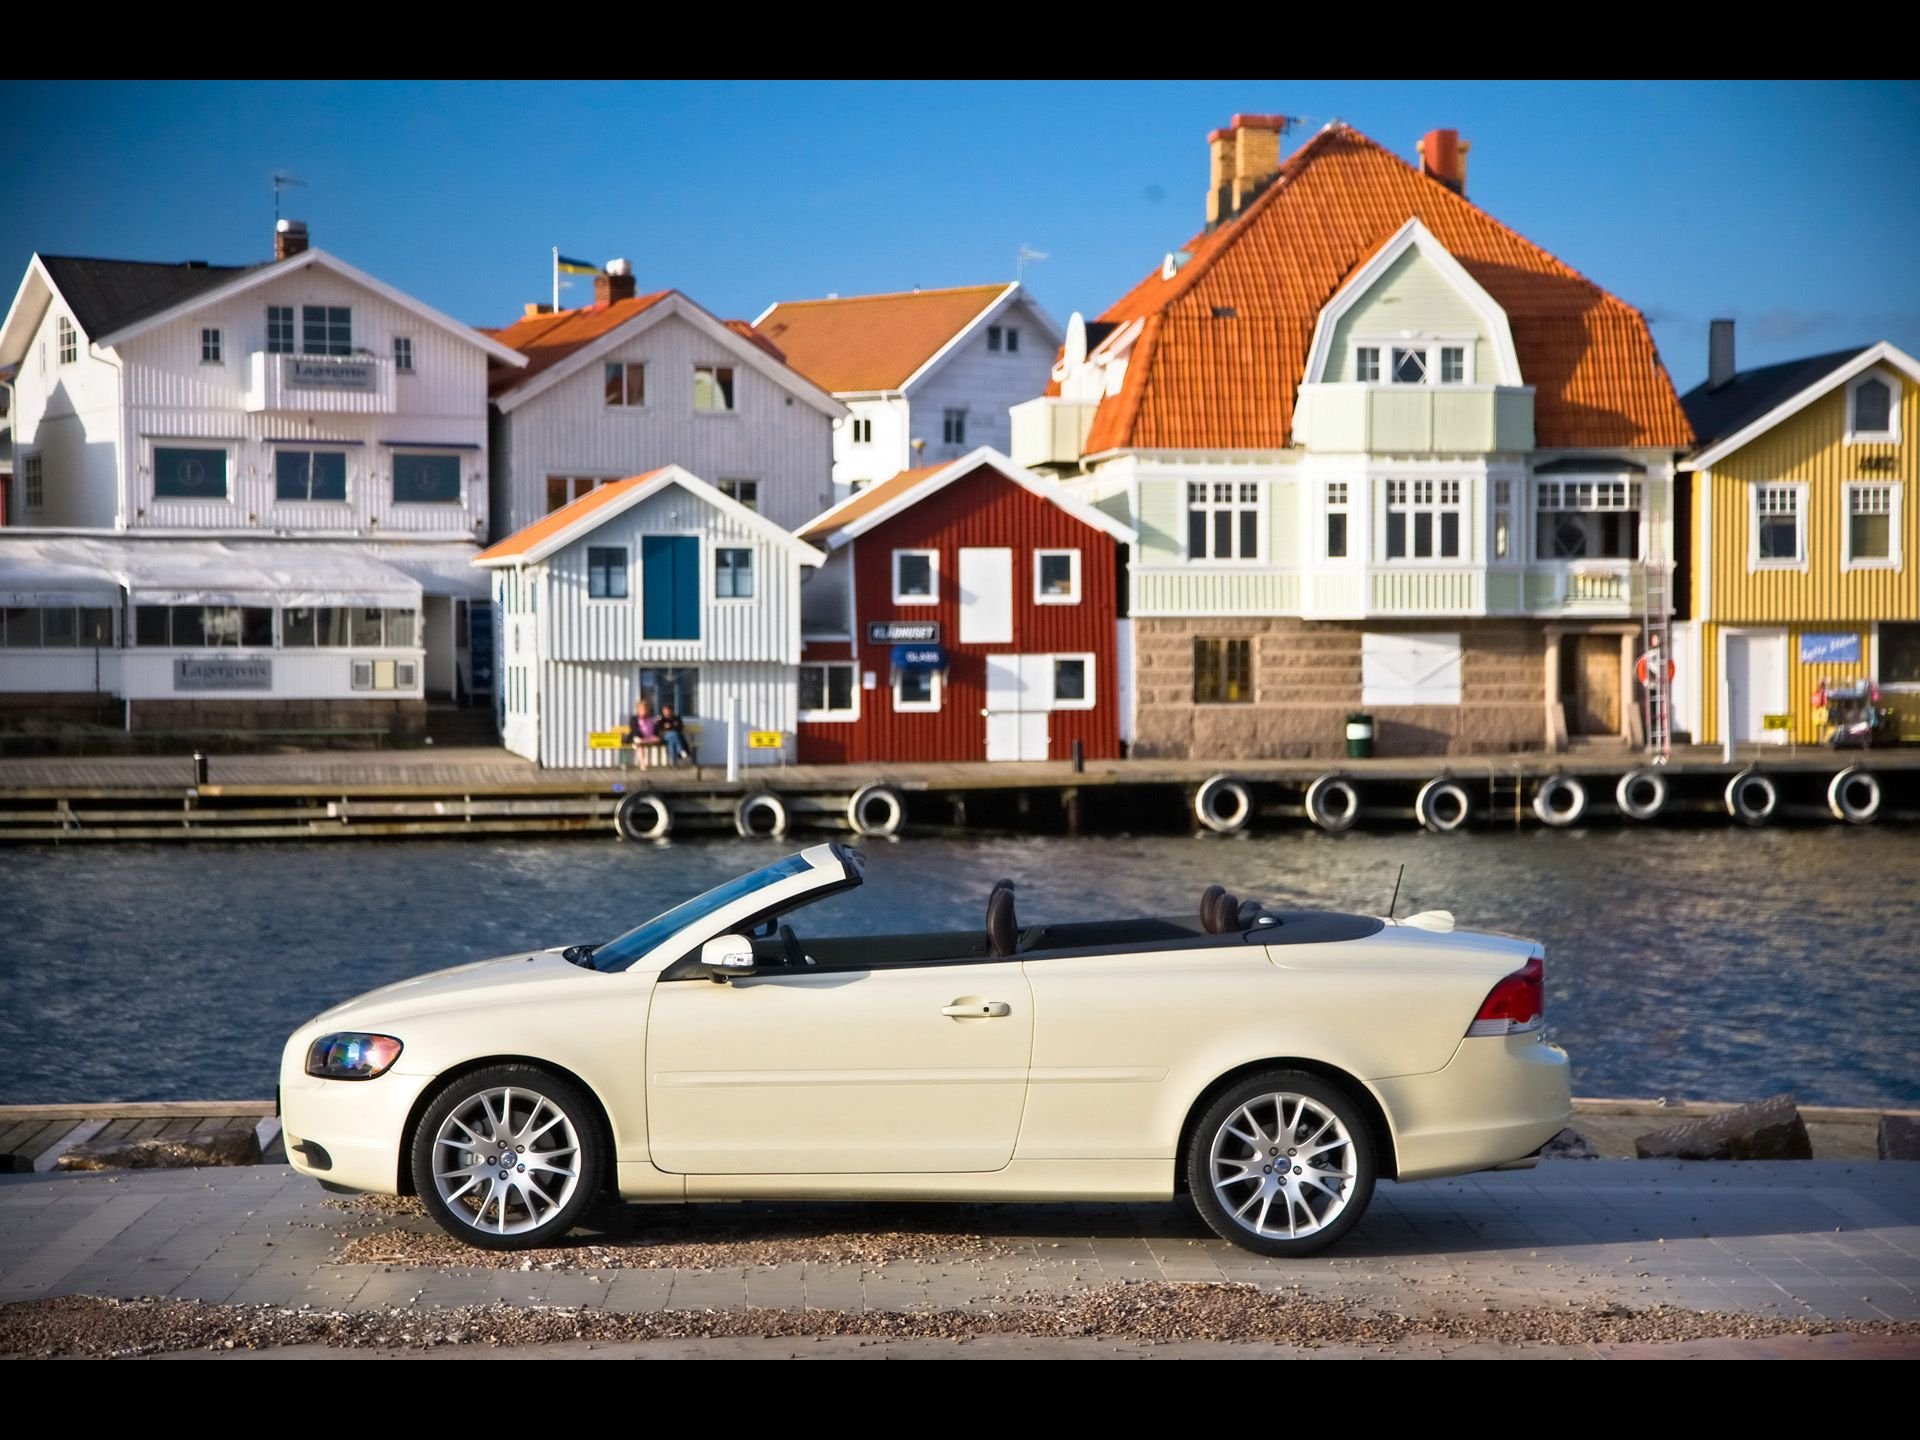 Volvo c70 convertible volvo pinterest volvo volvo c70 and volvo convertible